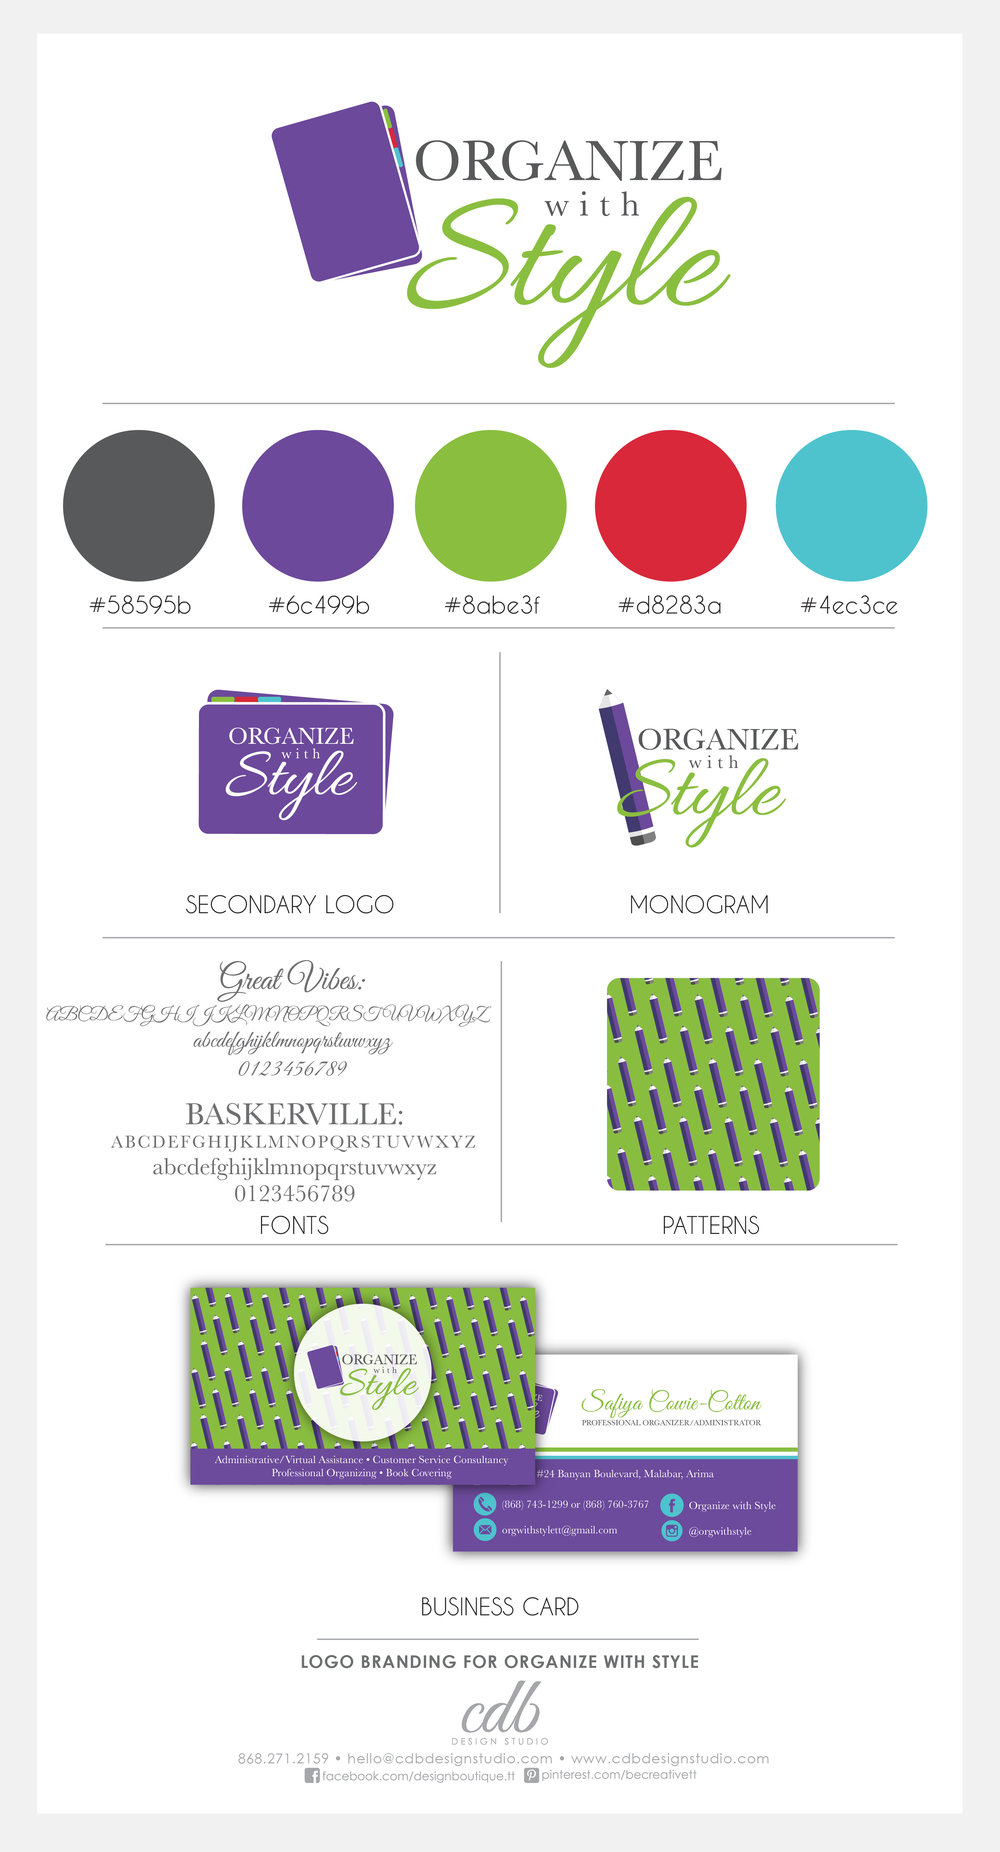 Organize with Style_Brand Board